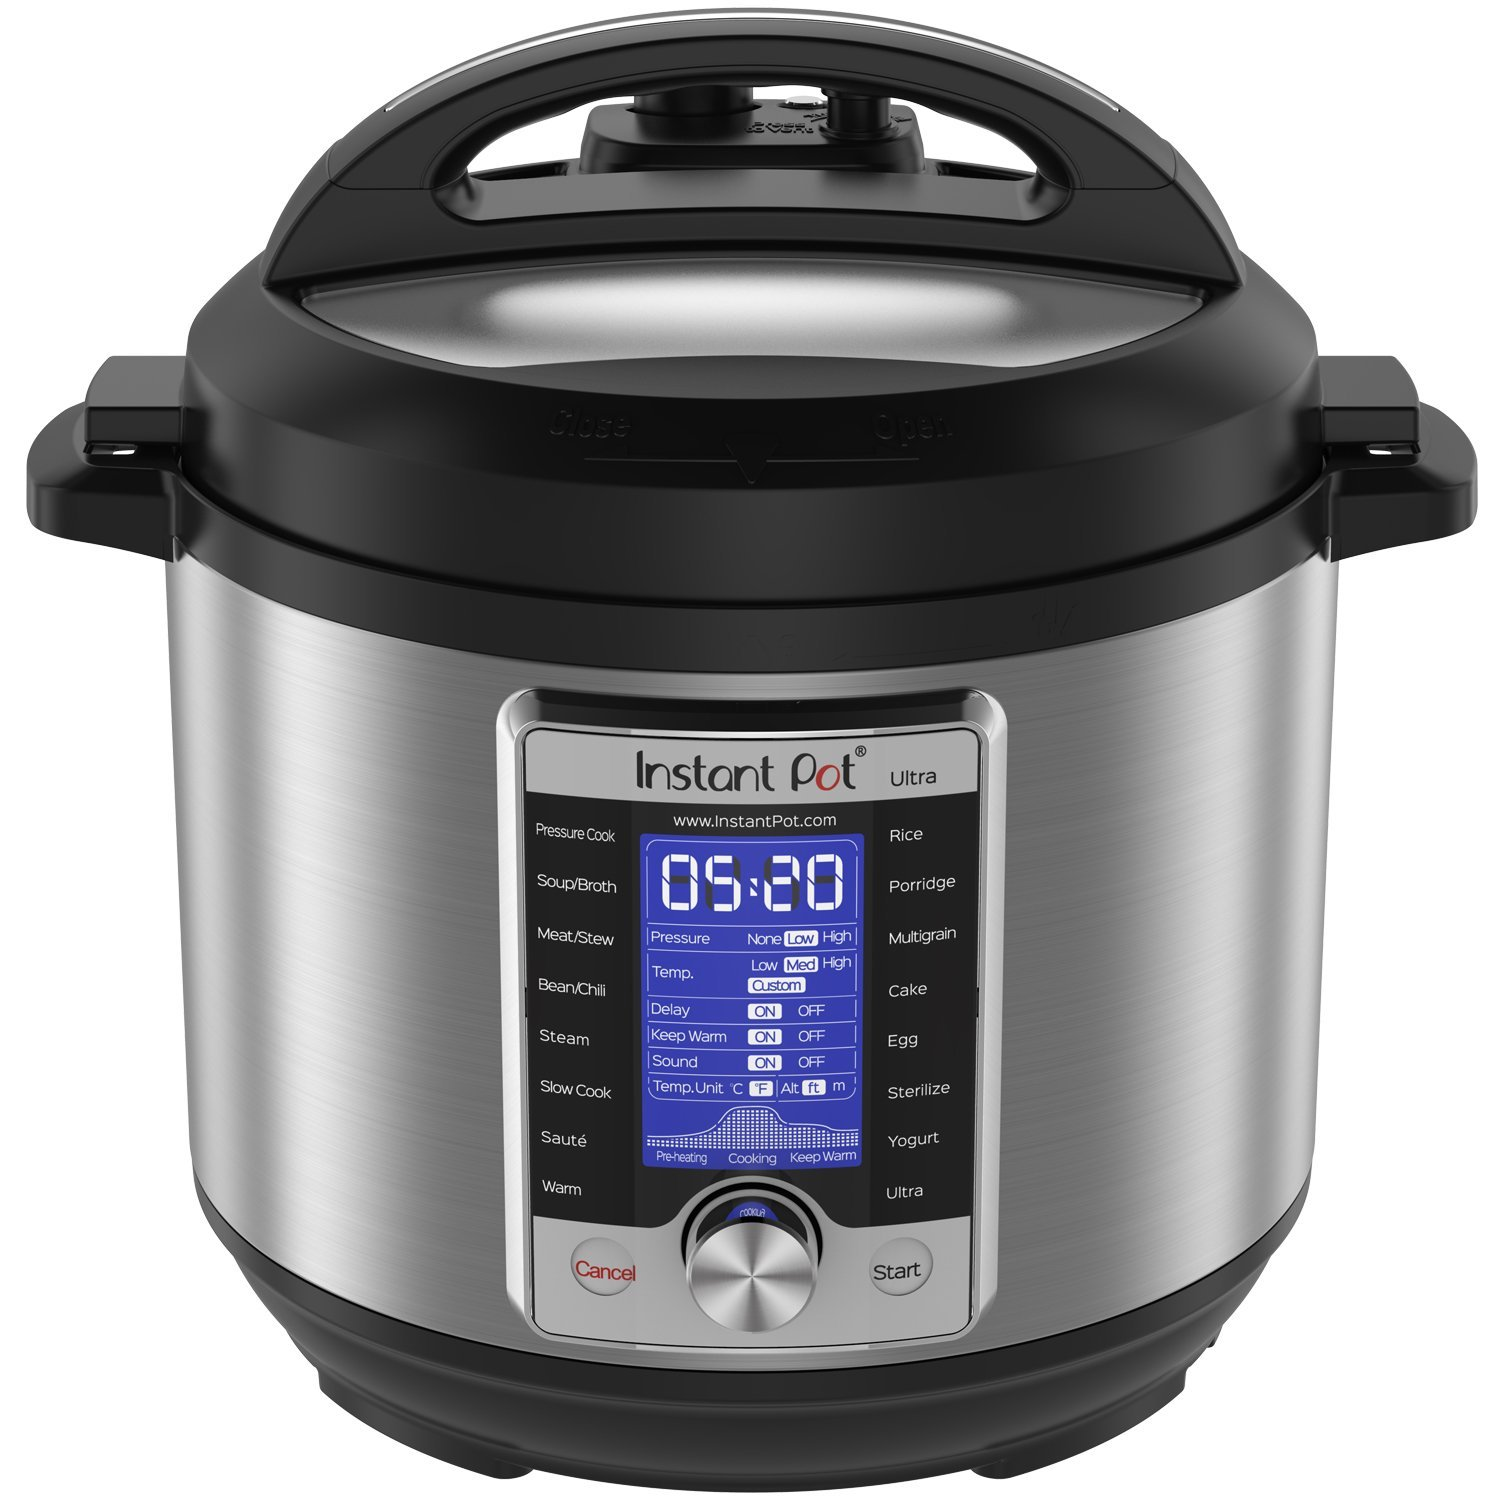 Review of Instant Pot Ultra 6 Qt 10-in-1 Multi- Use Programm ...